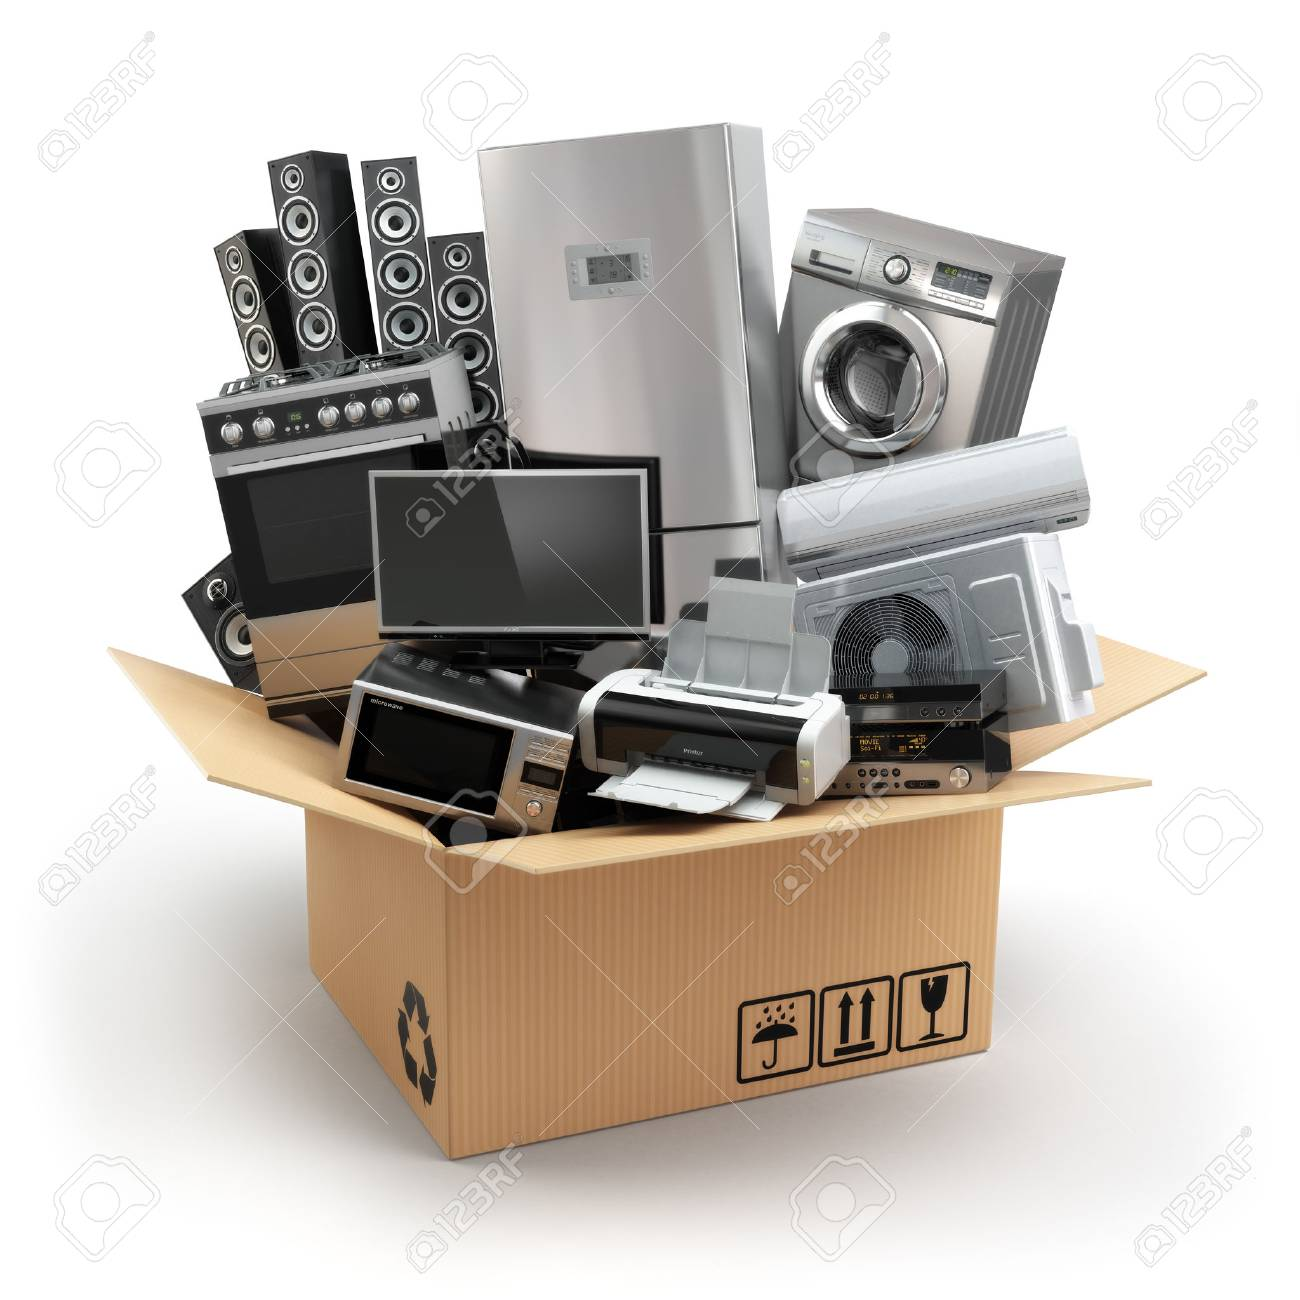 Delivery or moving concept. Home appliance in box. Fridge, washing machine, tv printer, microvawe oven, air conditioneer and loudspeakers. 3d - 47274534